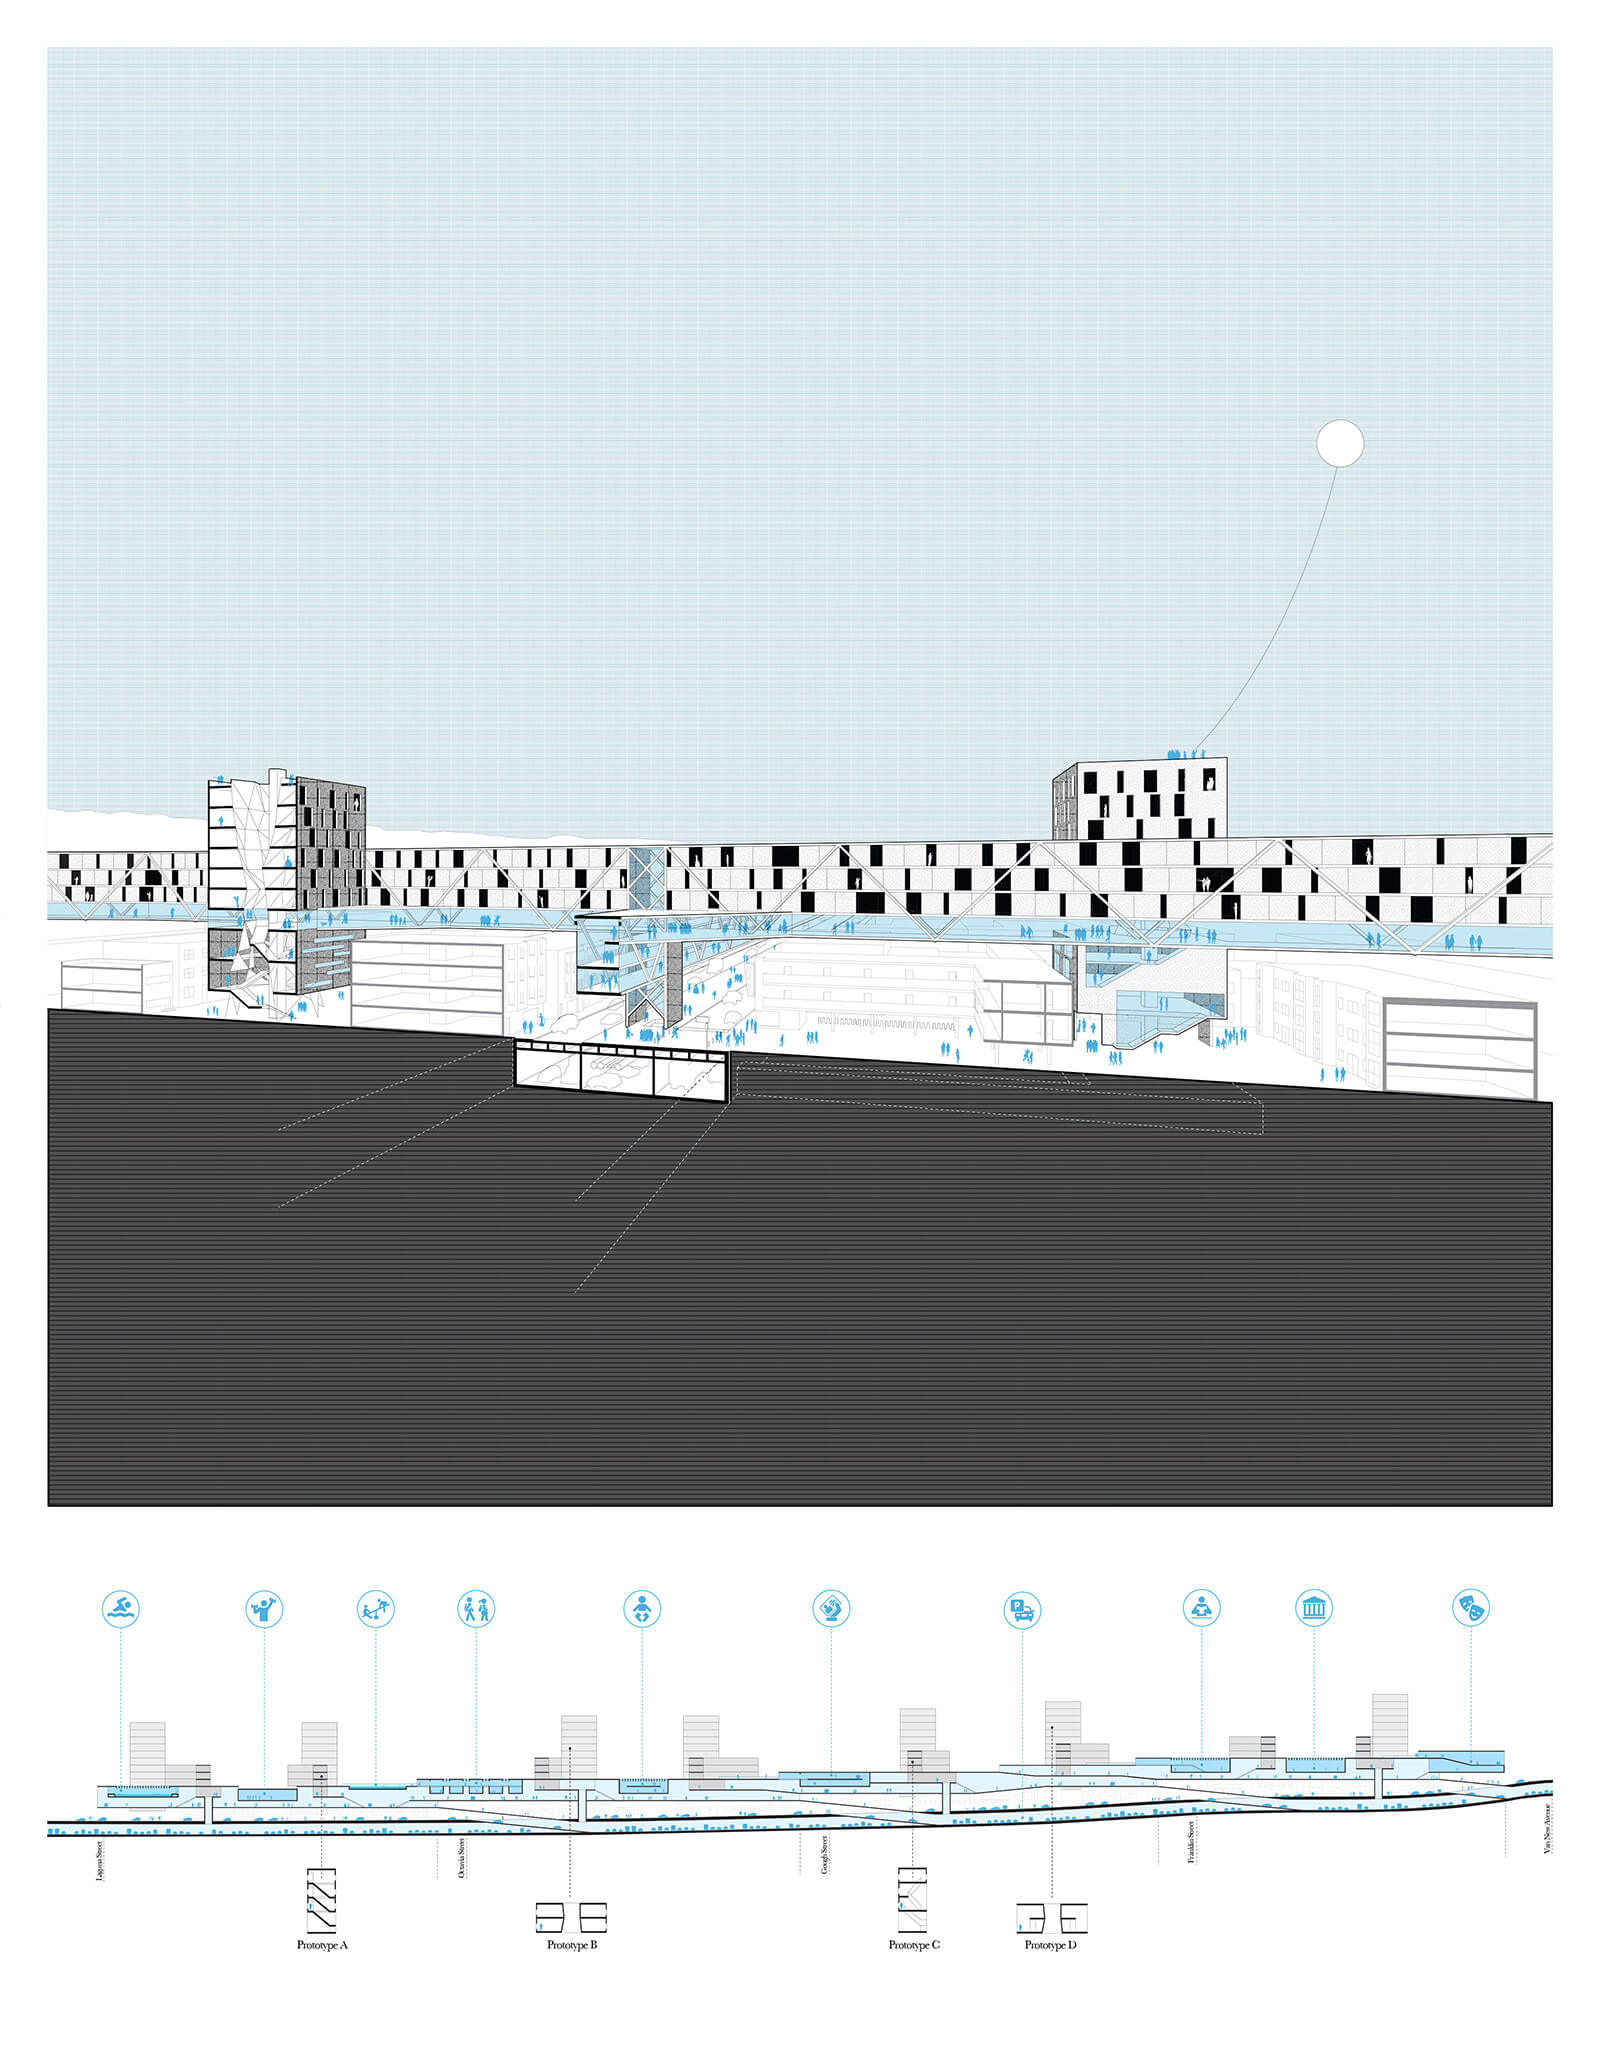 studio vara research the city + the city drawing rendering